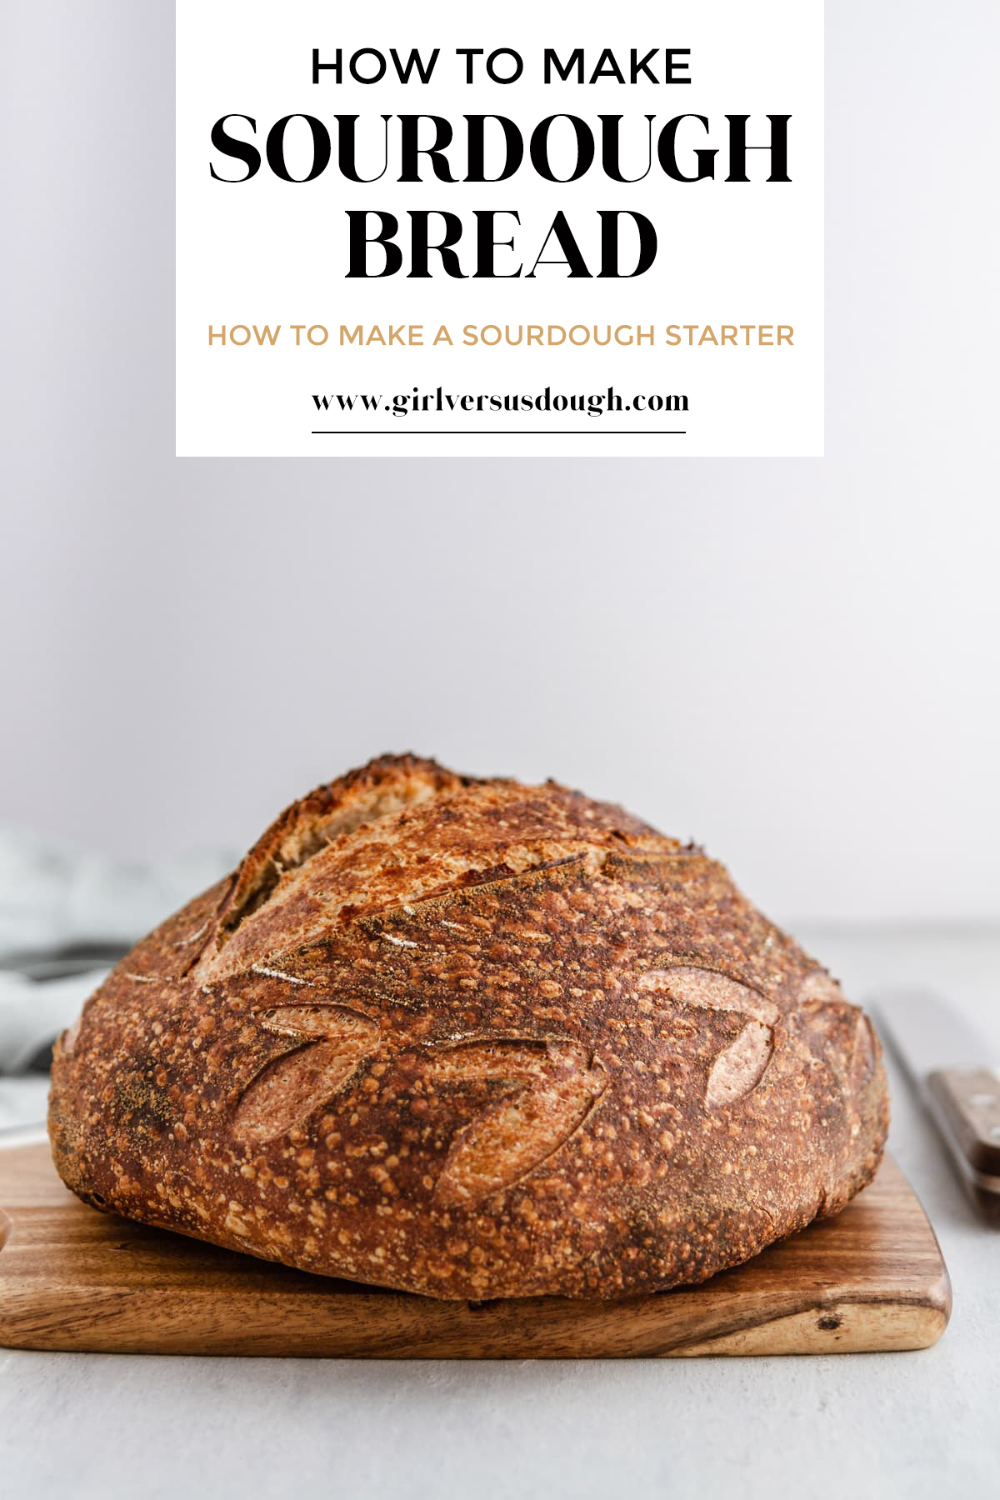 How to Make a Sourdough Starter in Seven Days Food